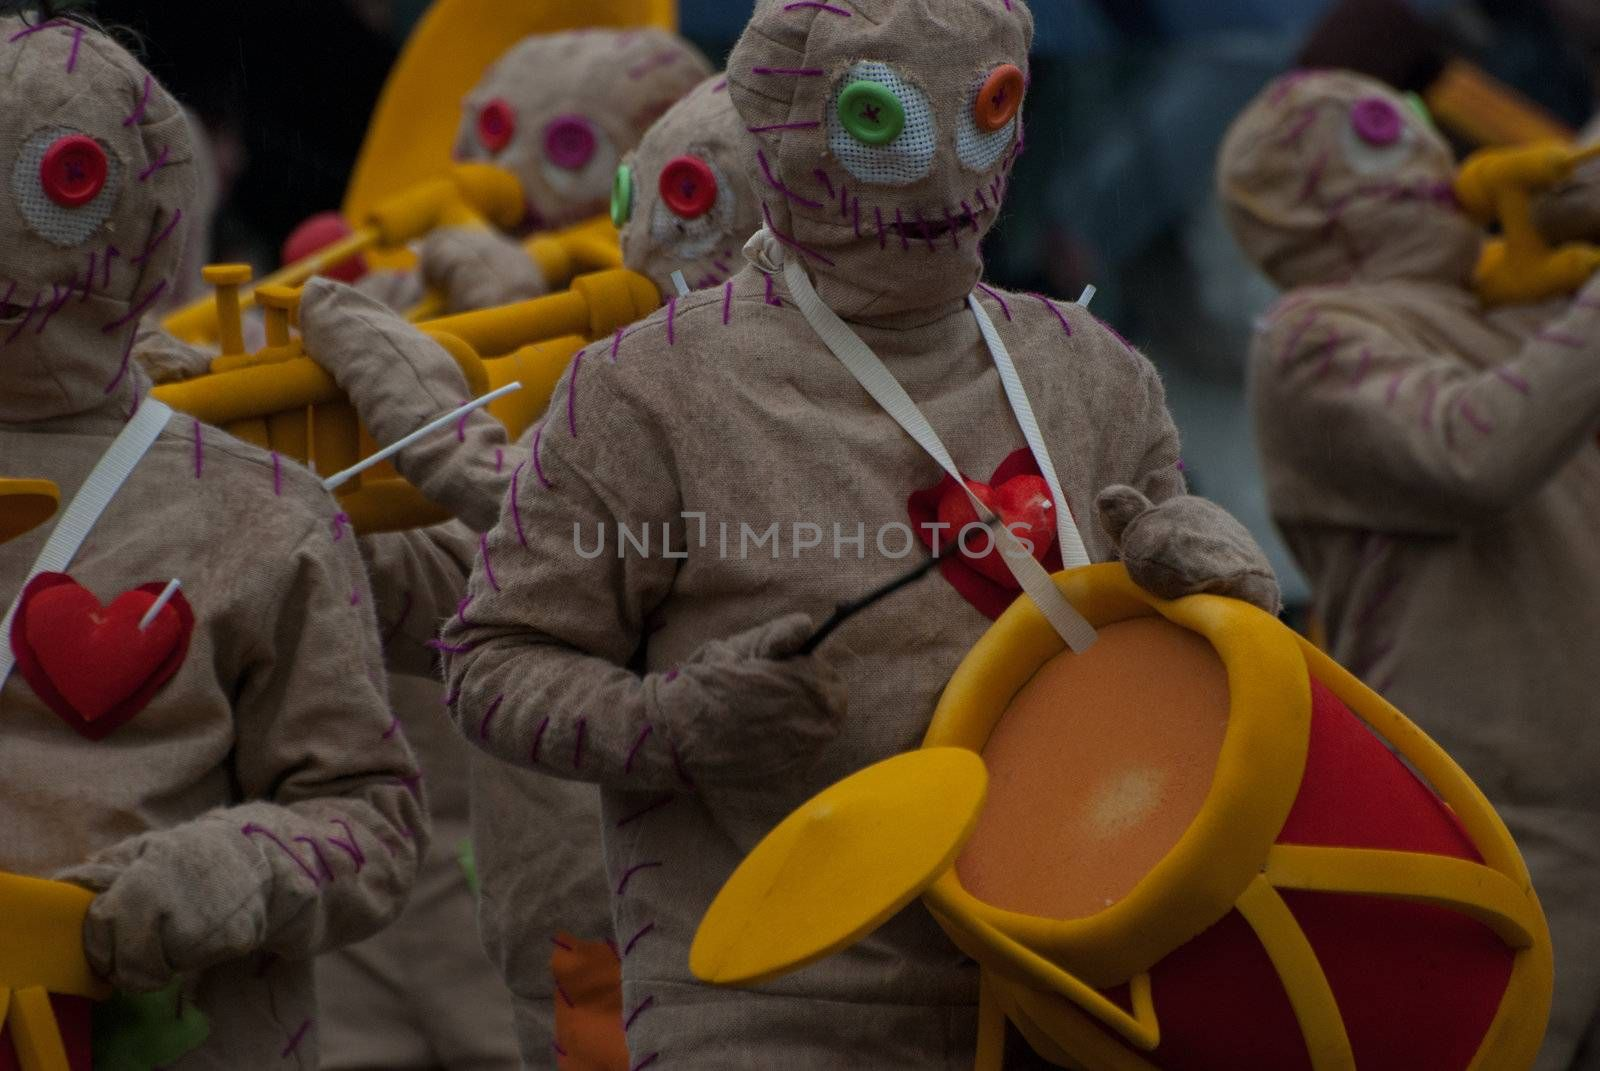 OVAR, PORTUGAL - MARCH 8: Group 'Hippies'  during the Carnival Parade on March 8, 2011 in Ovar, Portugal.